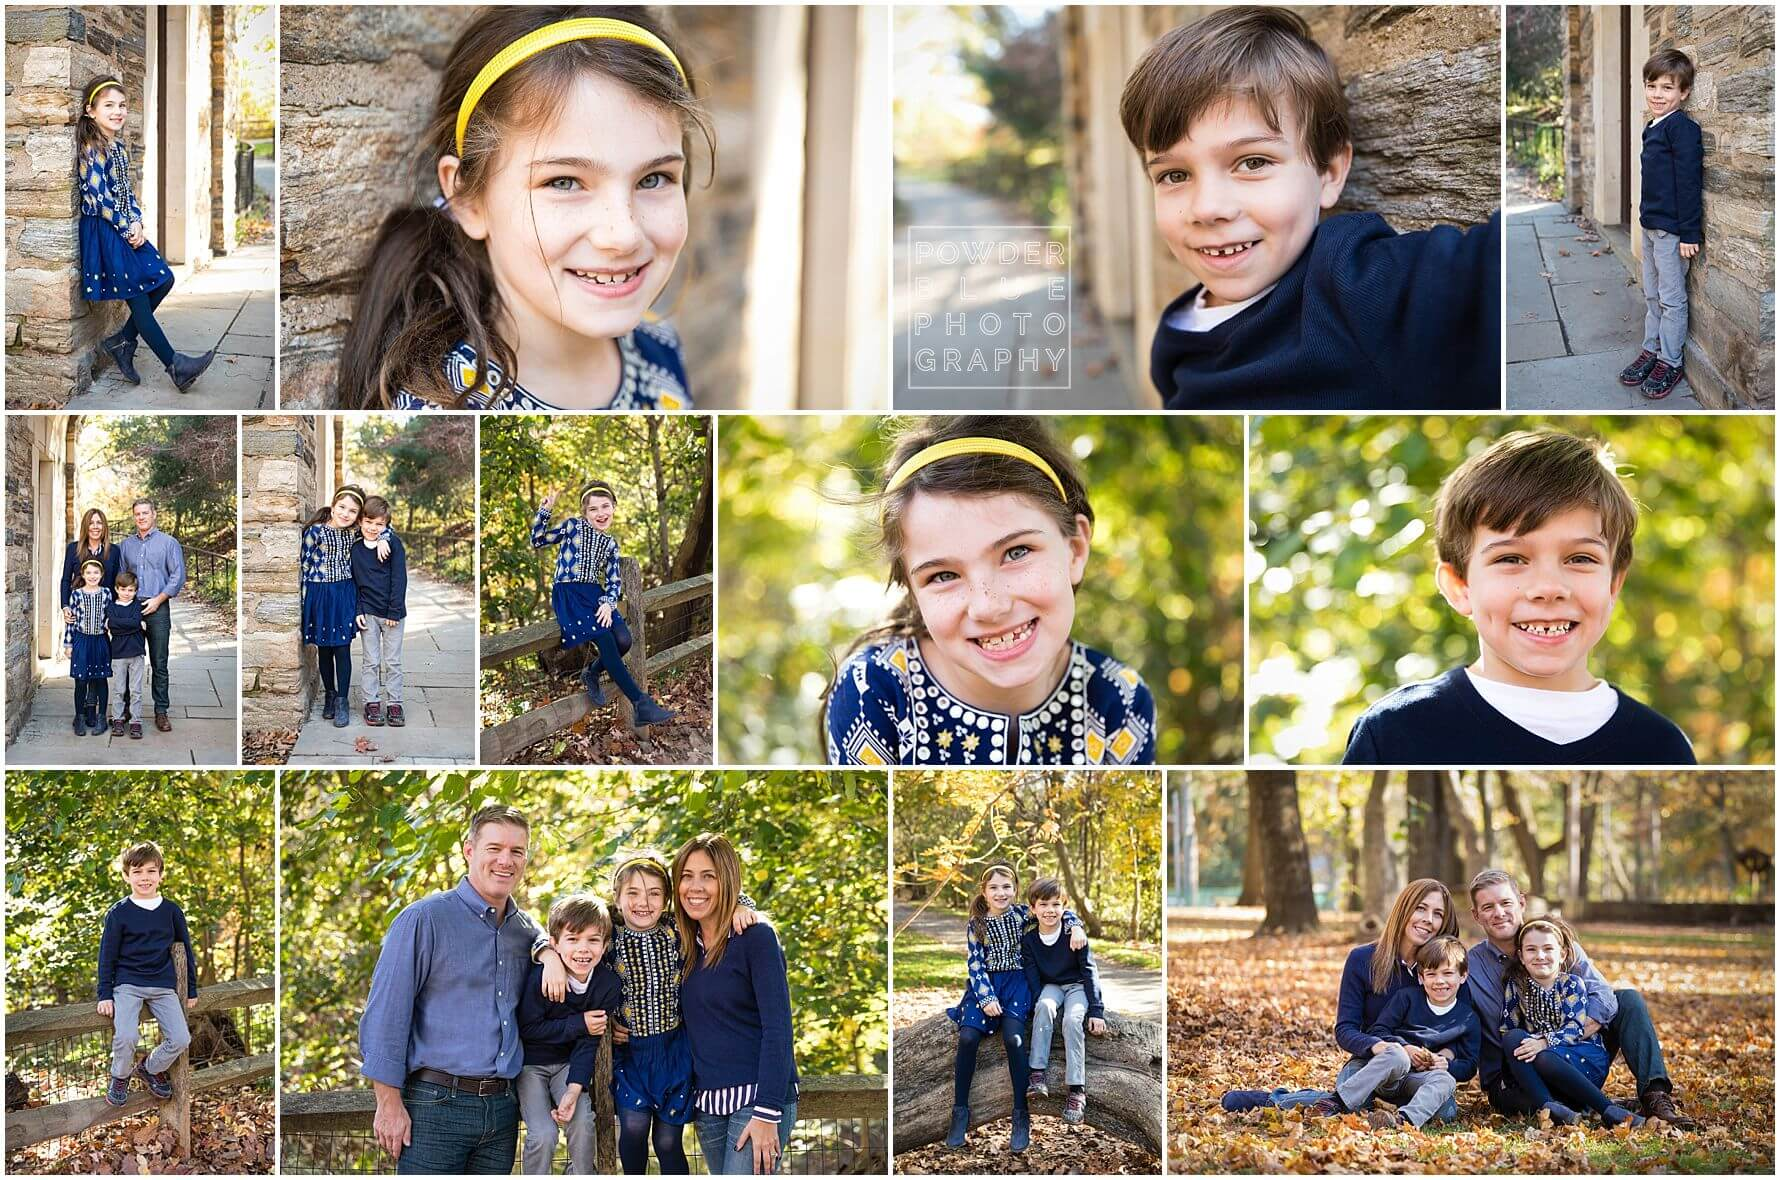 pittsburgh family photographer fall mini sessions in pittsburgh, pa at frick park with green and yellow fall leaves